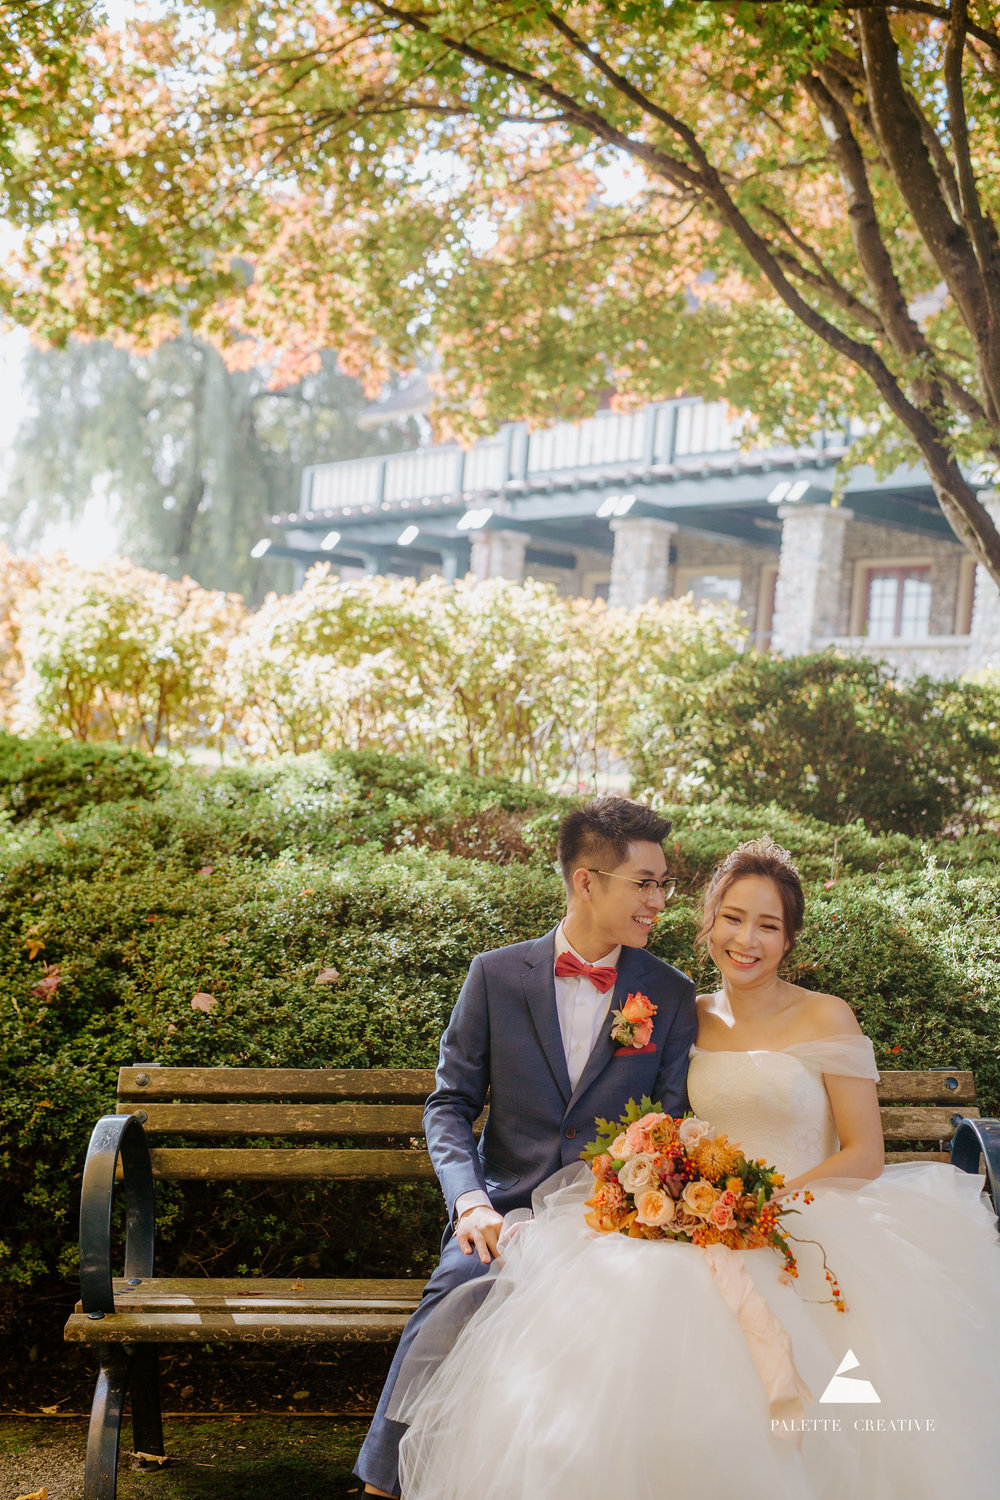 Ying&Adam-WeddingDay-HL-HD-75.JPG